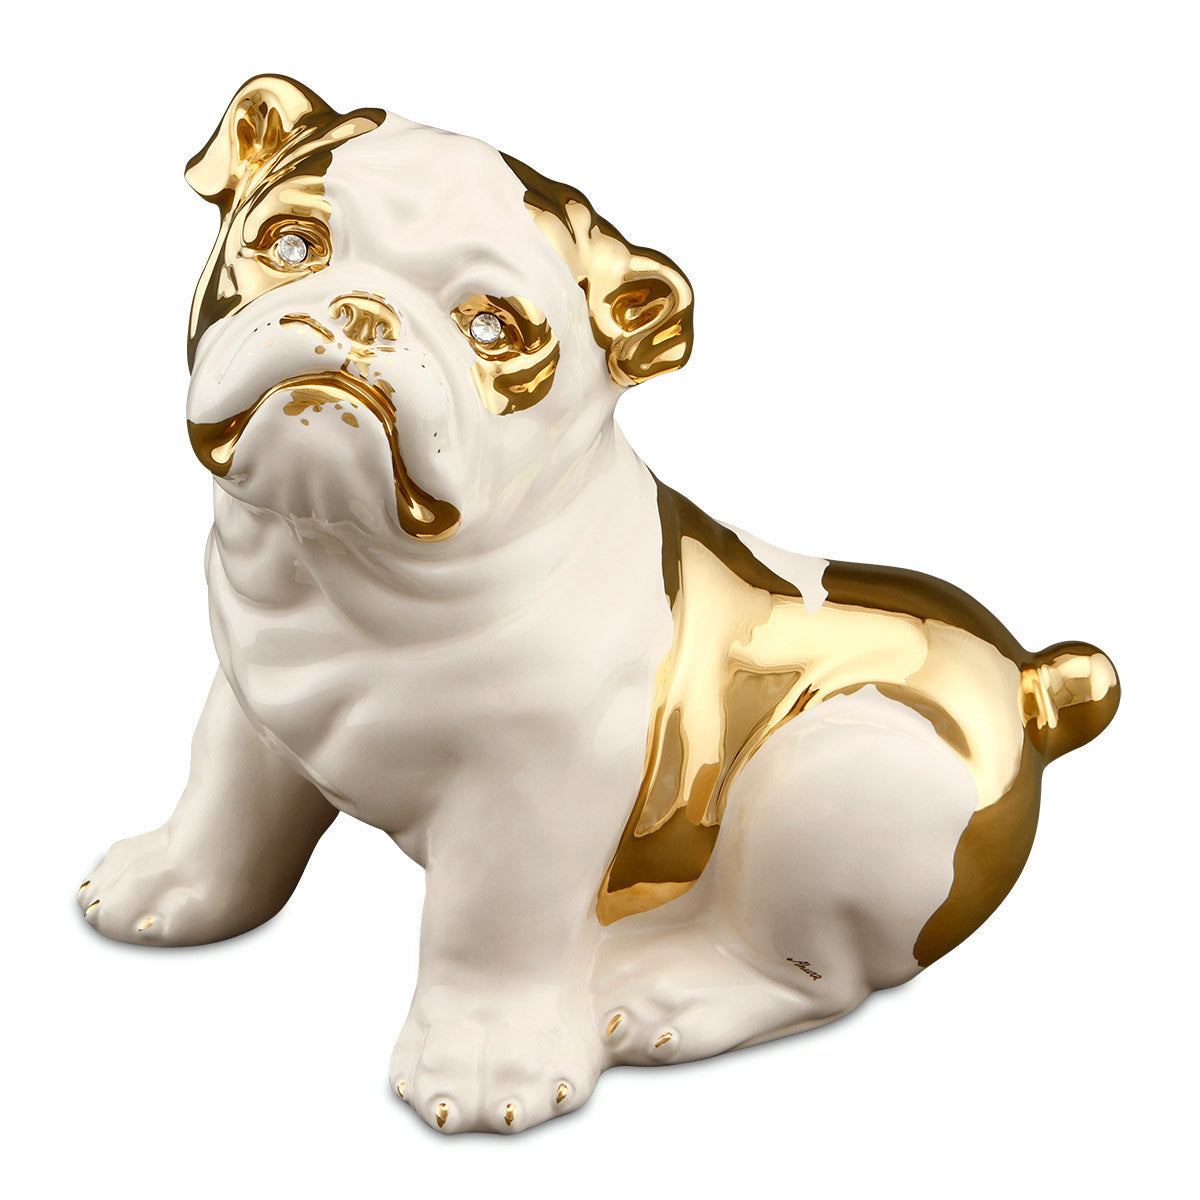 puppy bulldog ceramic porcelain animal statue hand-painted in gold